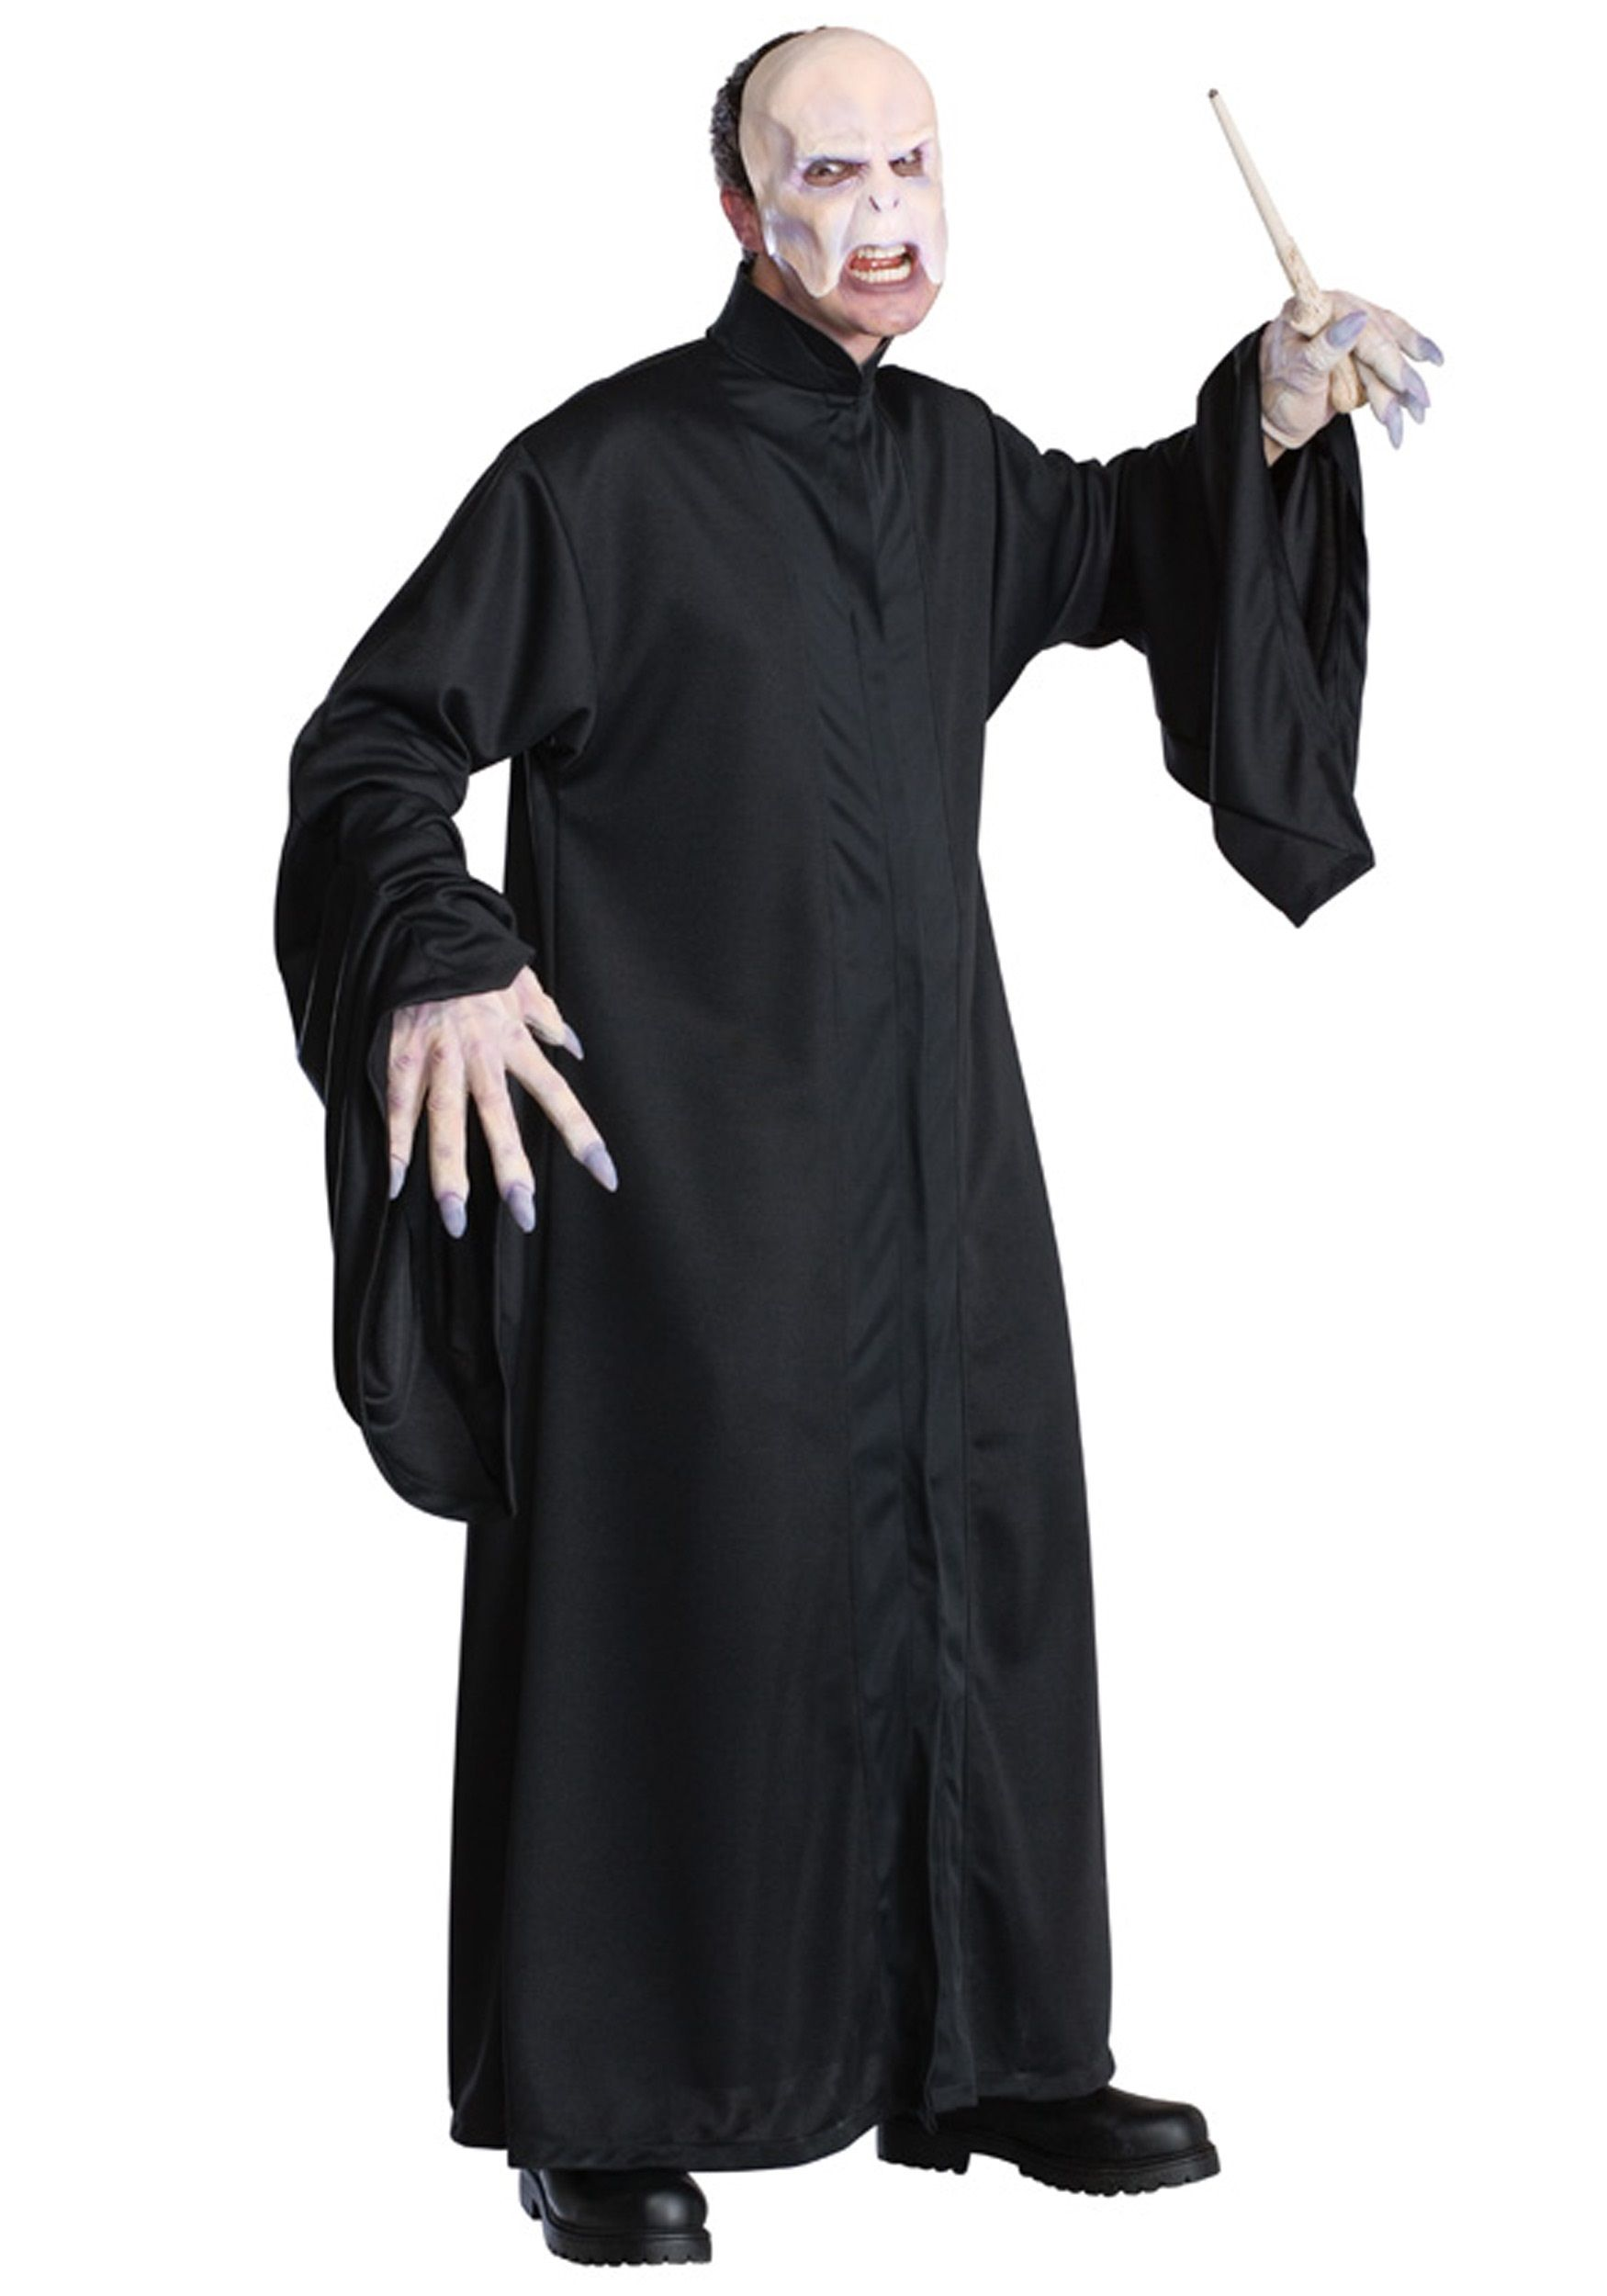 Pin by debbie boswell on costumes pinterest voldemort costumes harry potter adult voldemort robe black one size polyester includes the voldemort costume robe and the mask officially licensed harry potter costume solutioingenieria Images